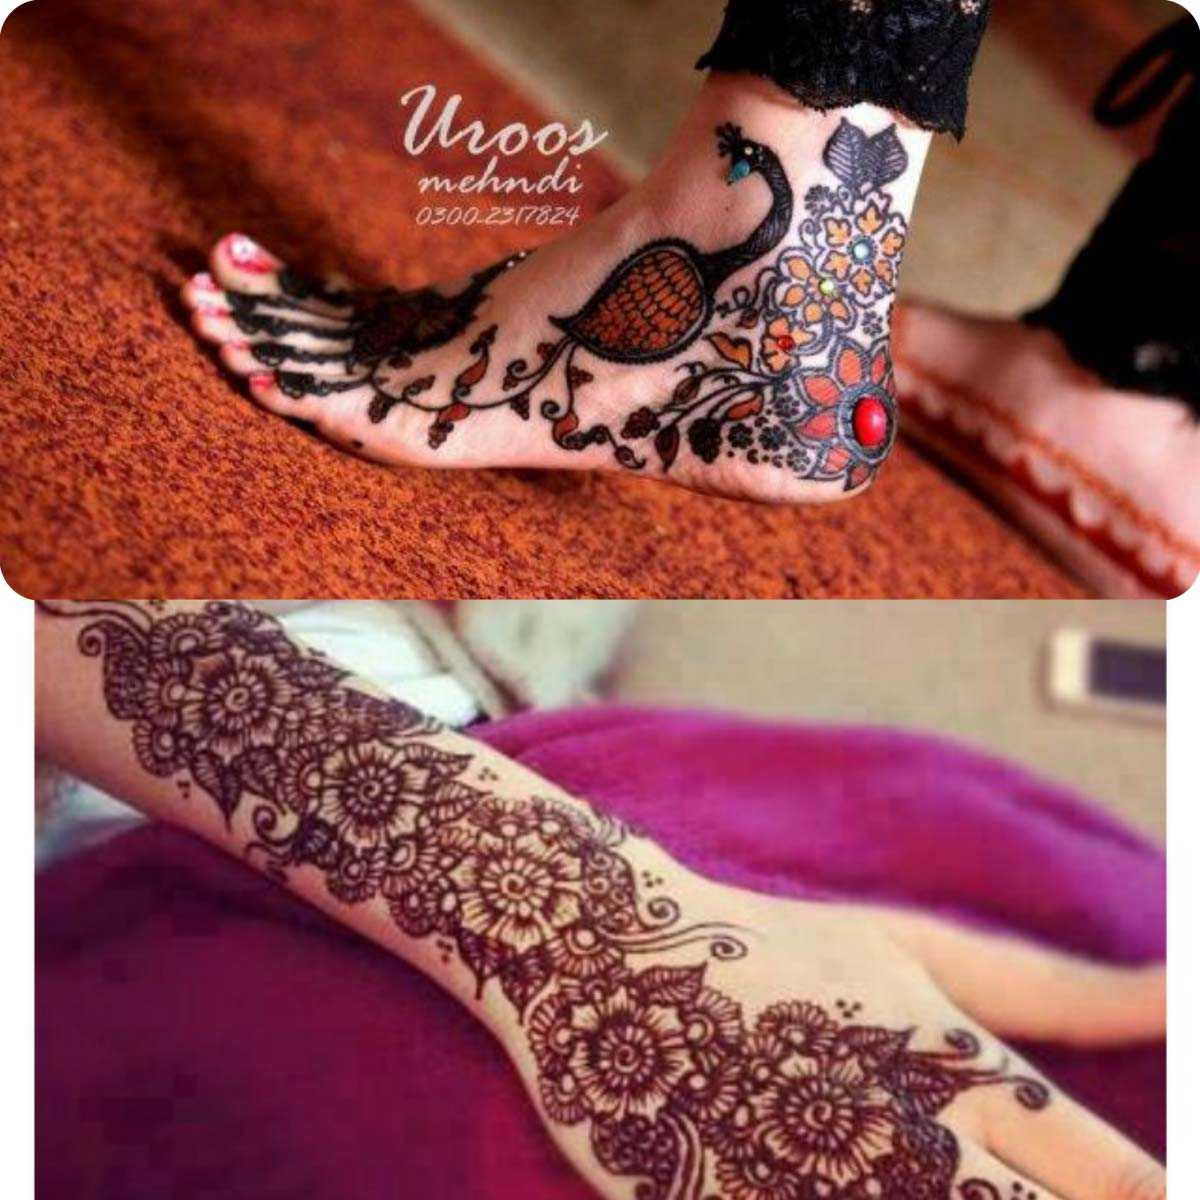 Mehndi design 2017 eid collection - New Simple And Easy Mehndi Designs 2016 2017 For Eid Al Azha 33